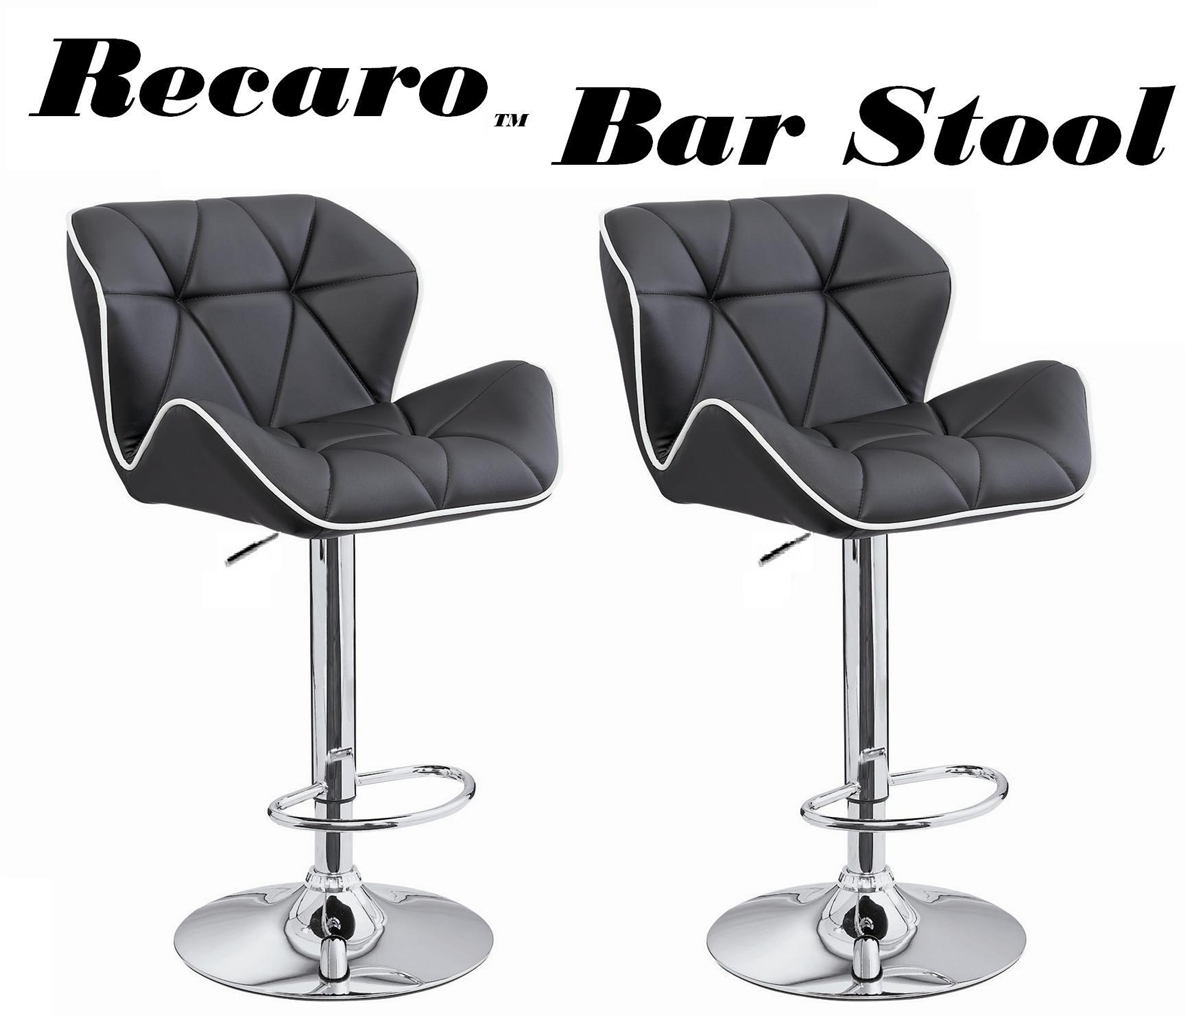 Super Recaro Modern Adjustable Bar Stool Set Of 2 Machost Co Dining Chair Design Ideas Machostcouk